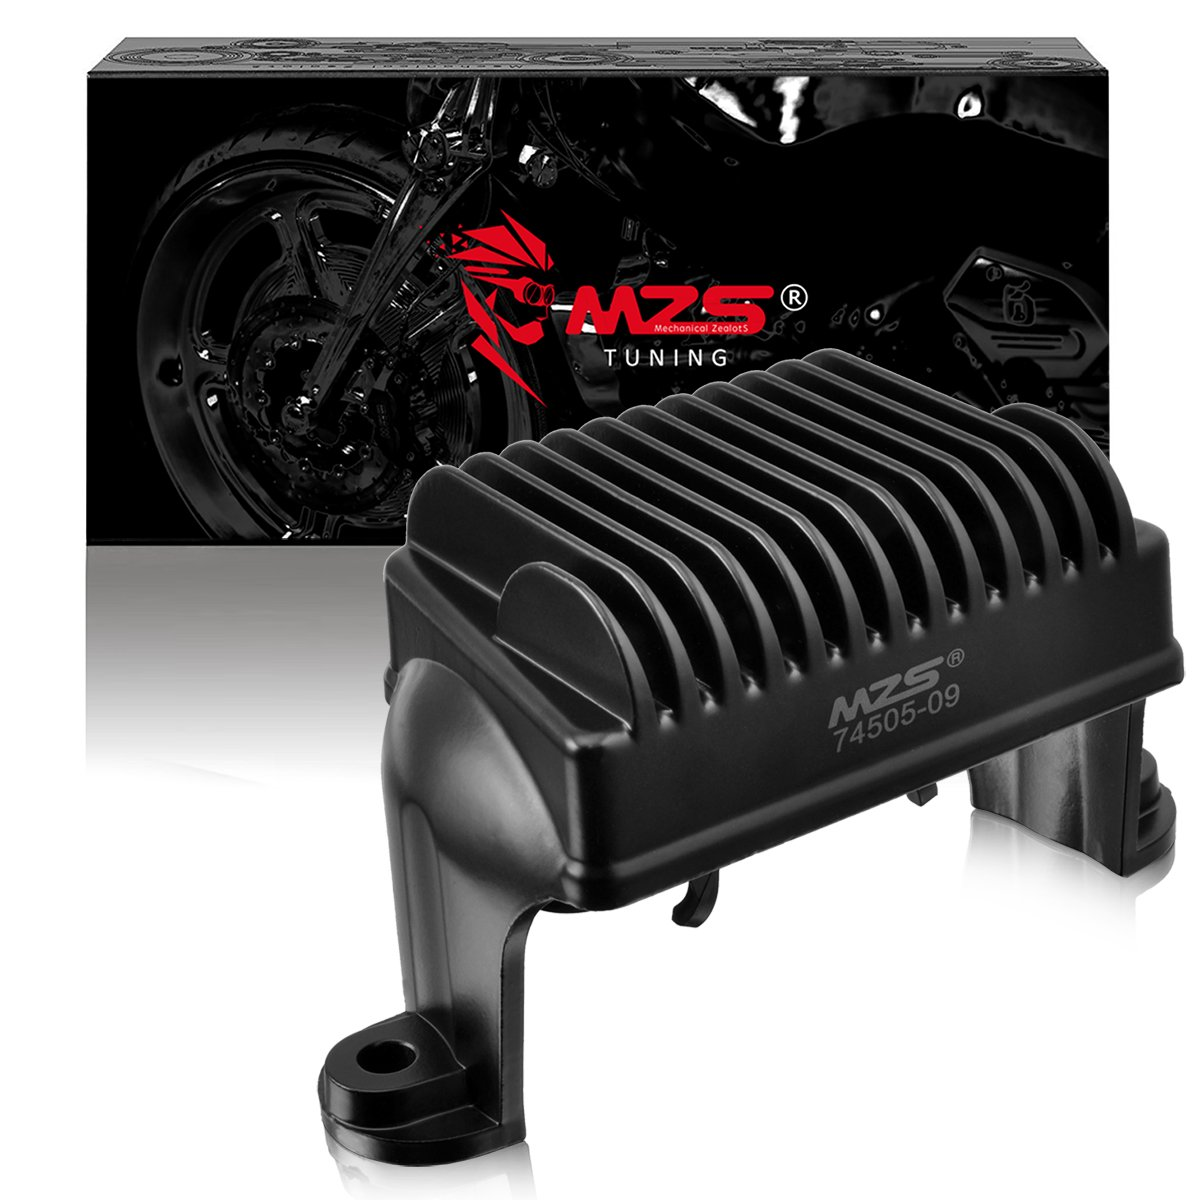 MZS Voltage Regulator Rectifier fit for Touring Models Electra Road Street Glide King Ultra Class 74505-09 74505-09A